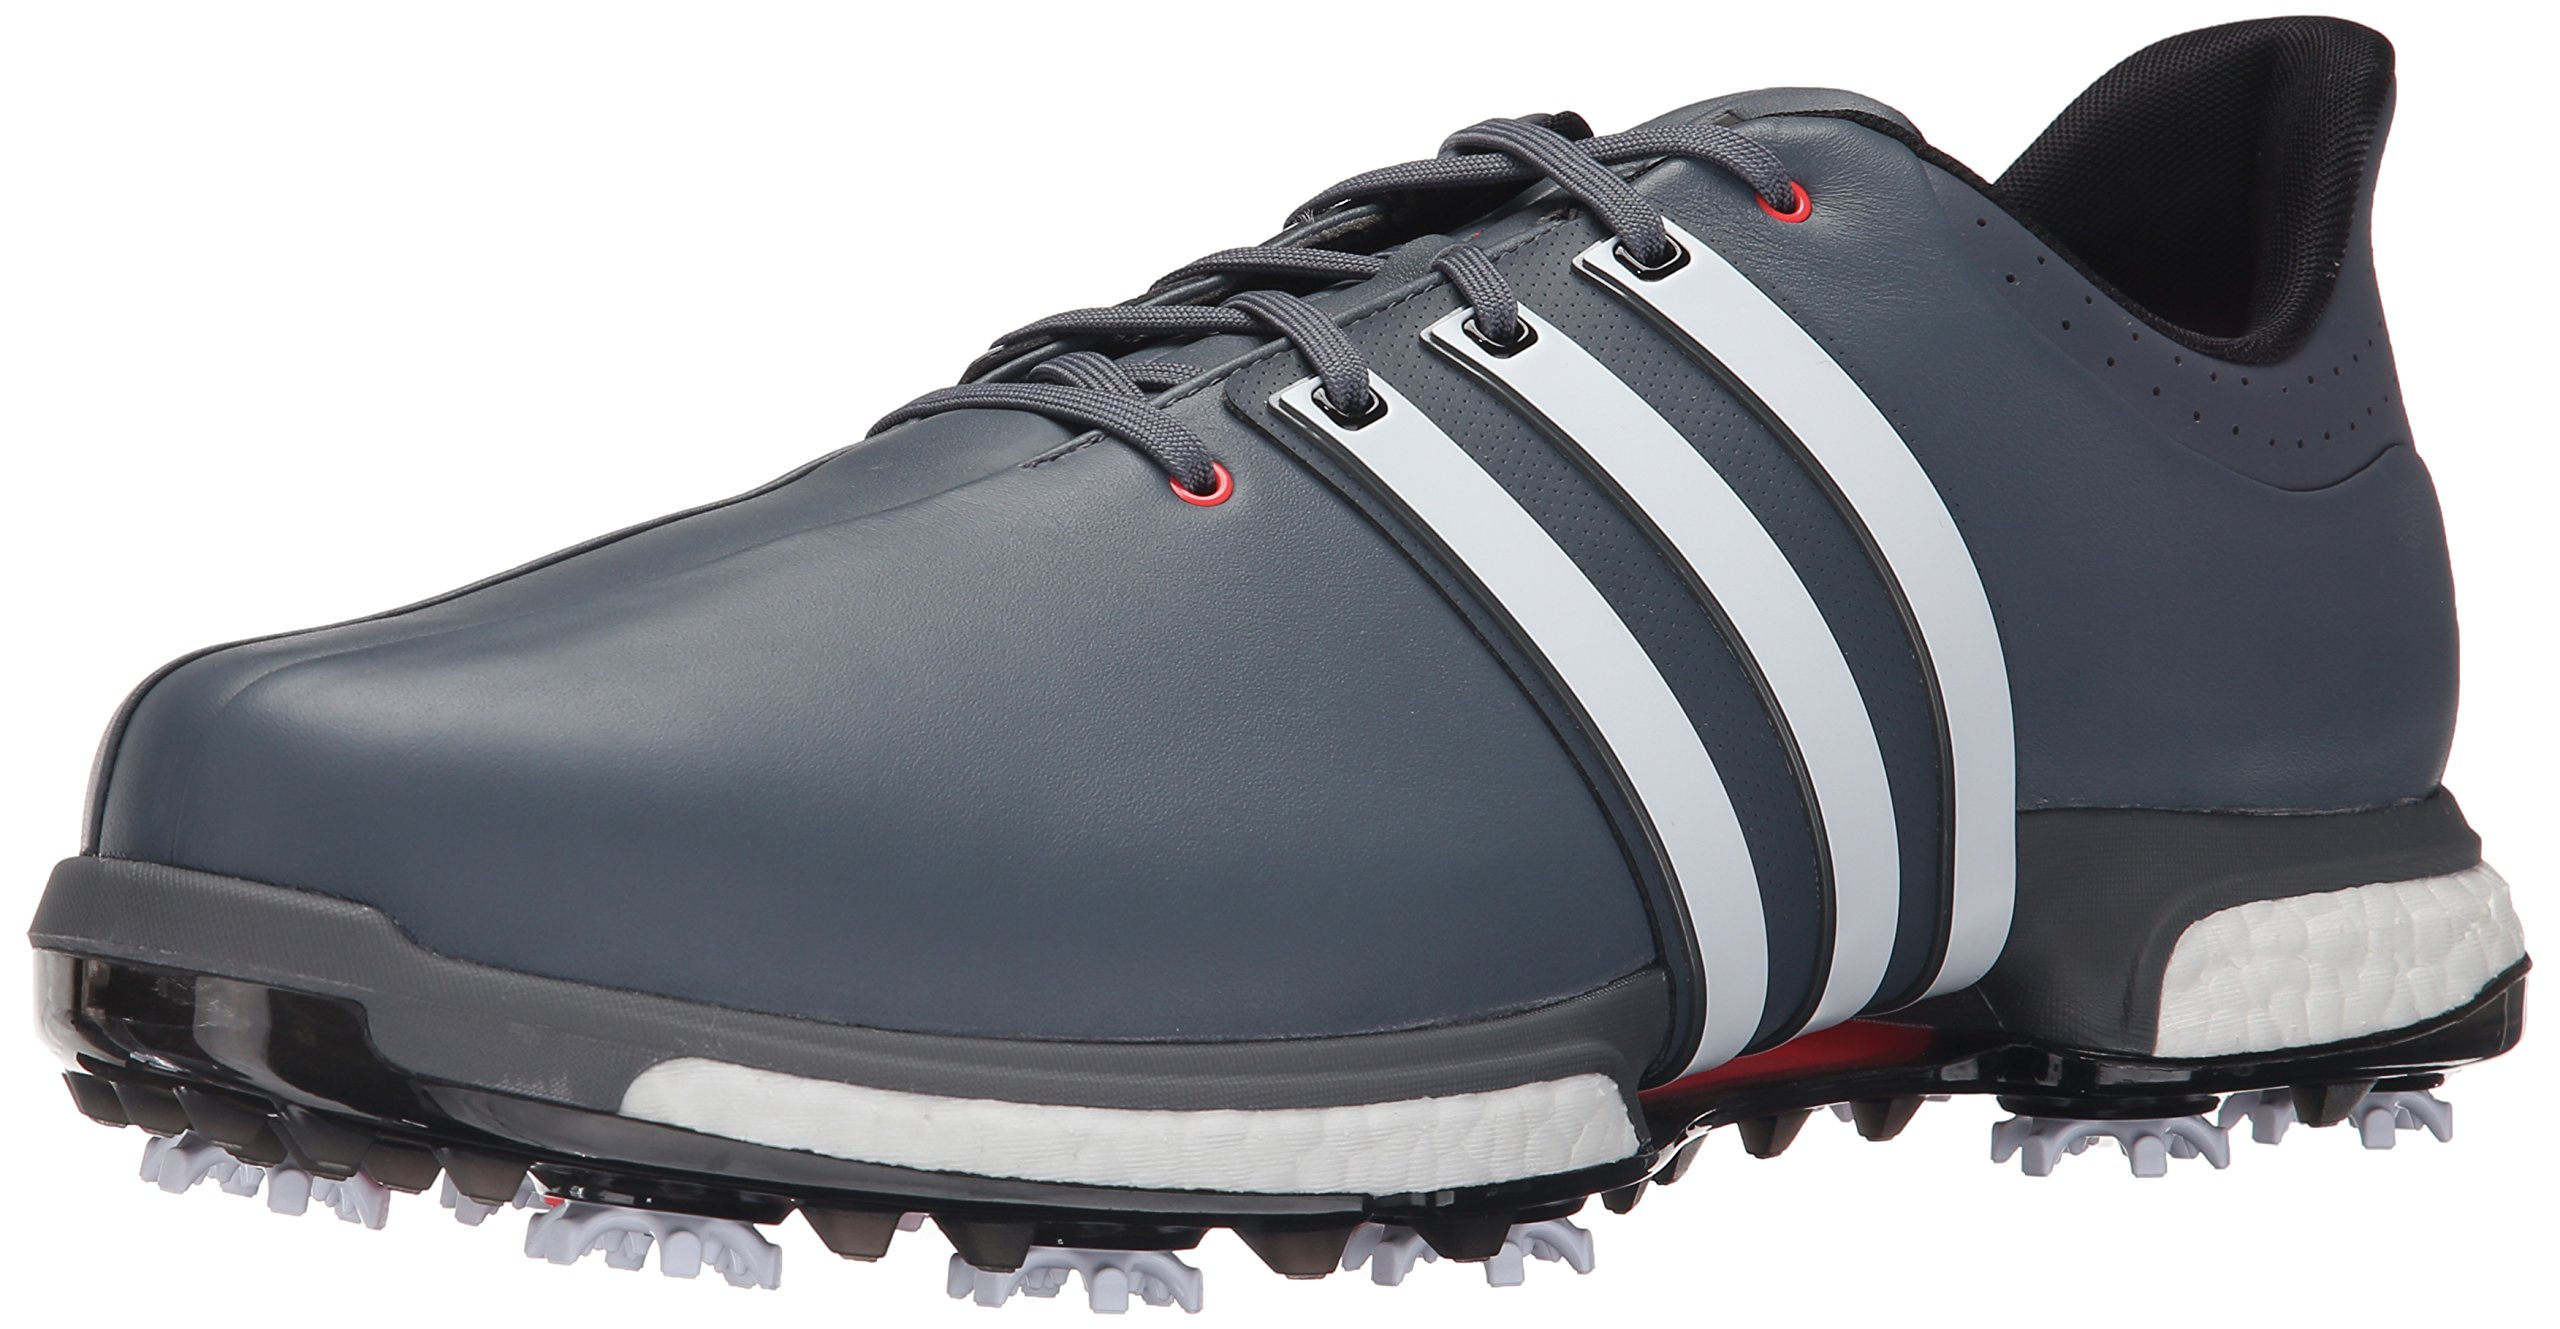 adidas Golf Men's Tour360 Boost Spiked Shoe,Grey/White/Shk Red,11 US